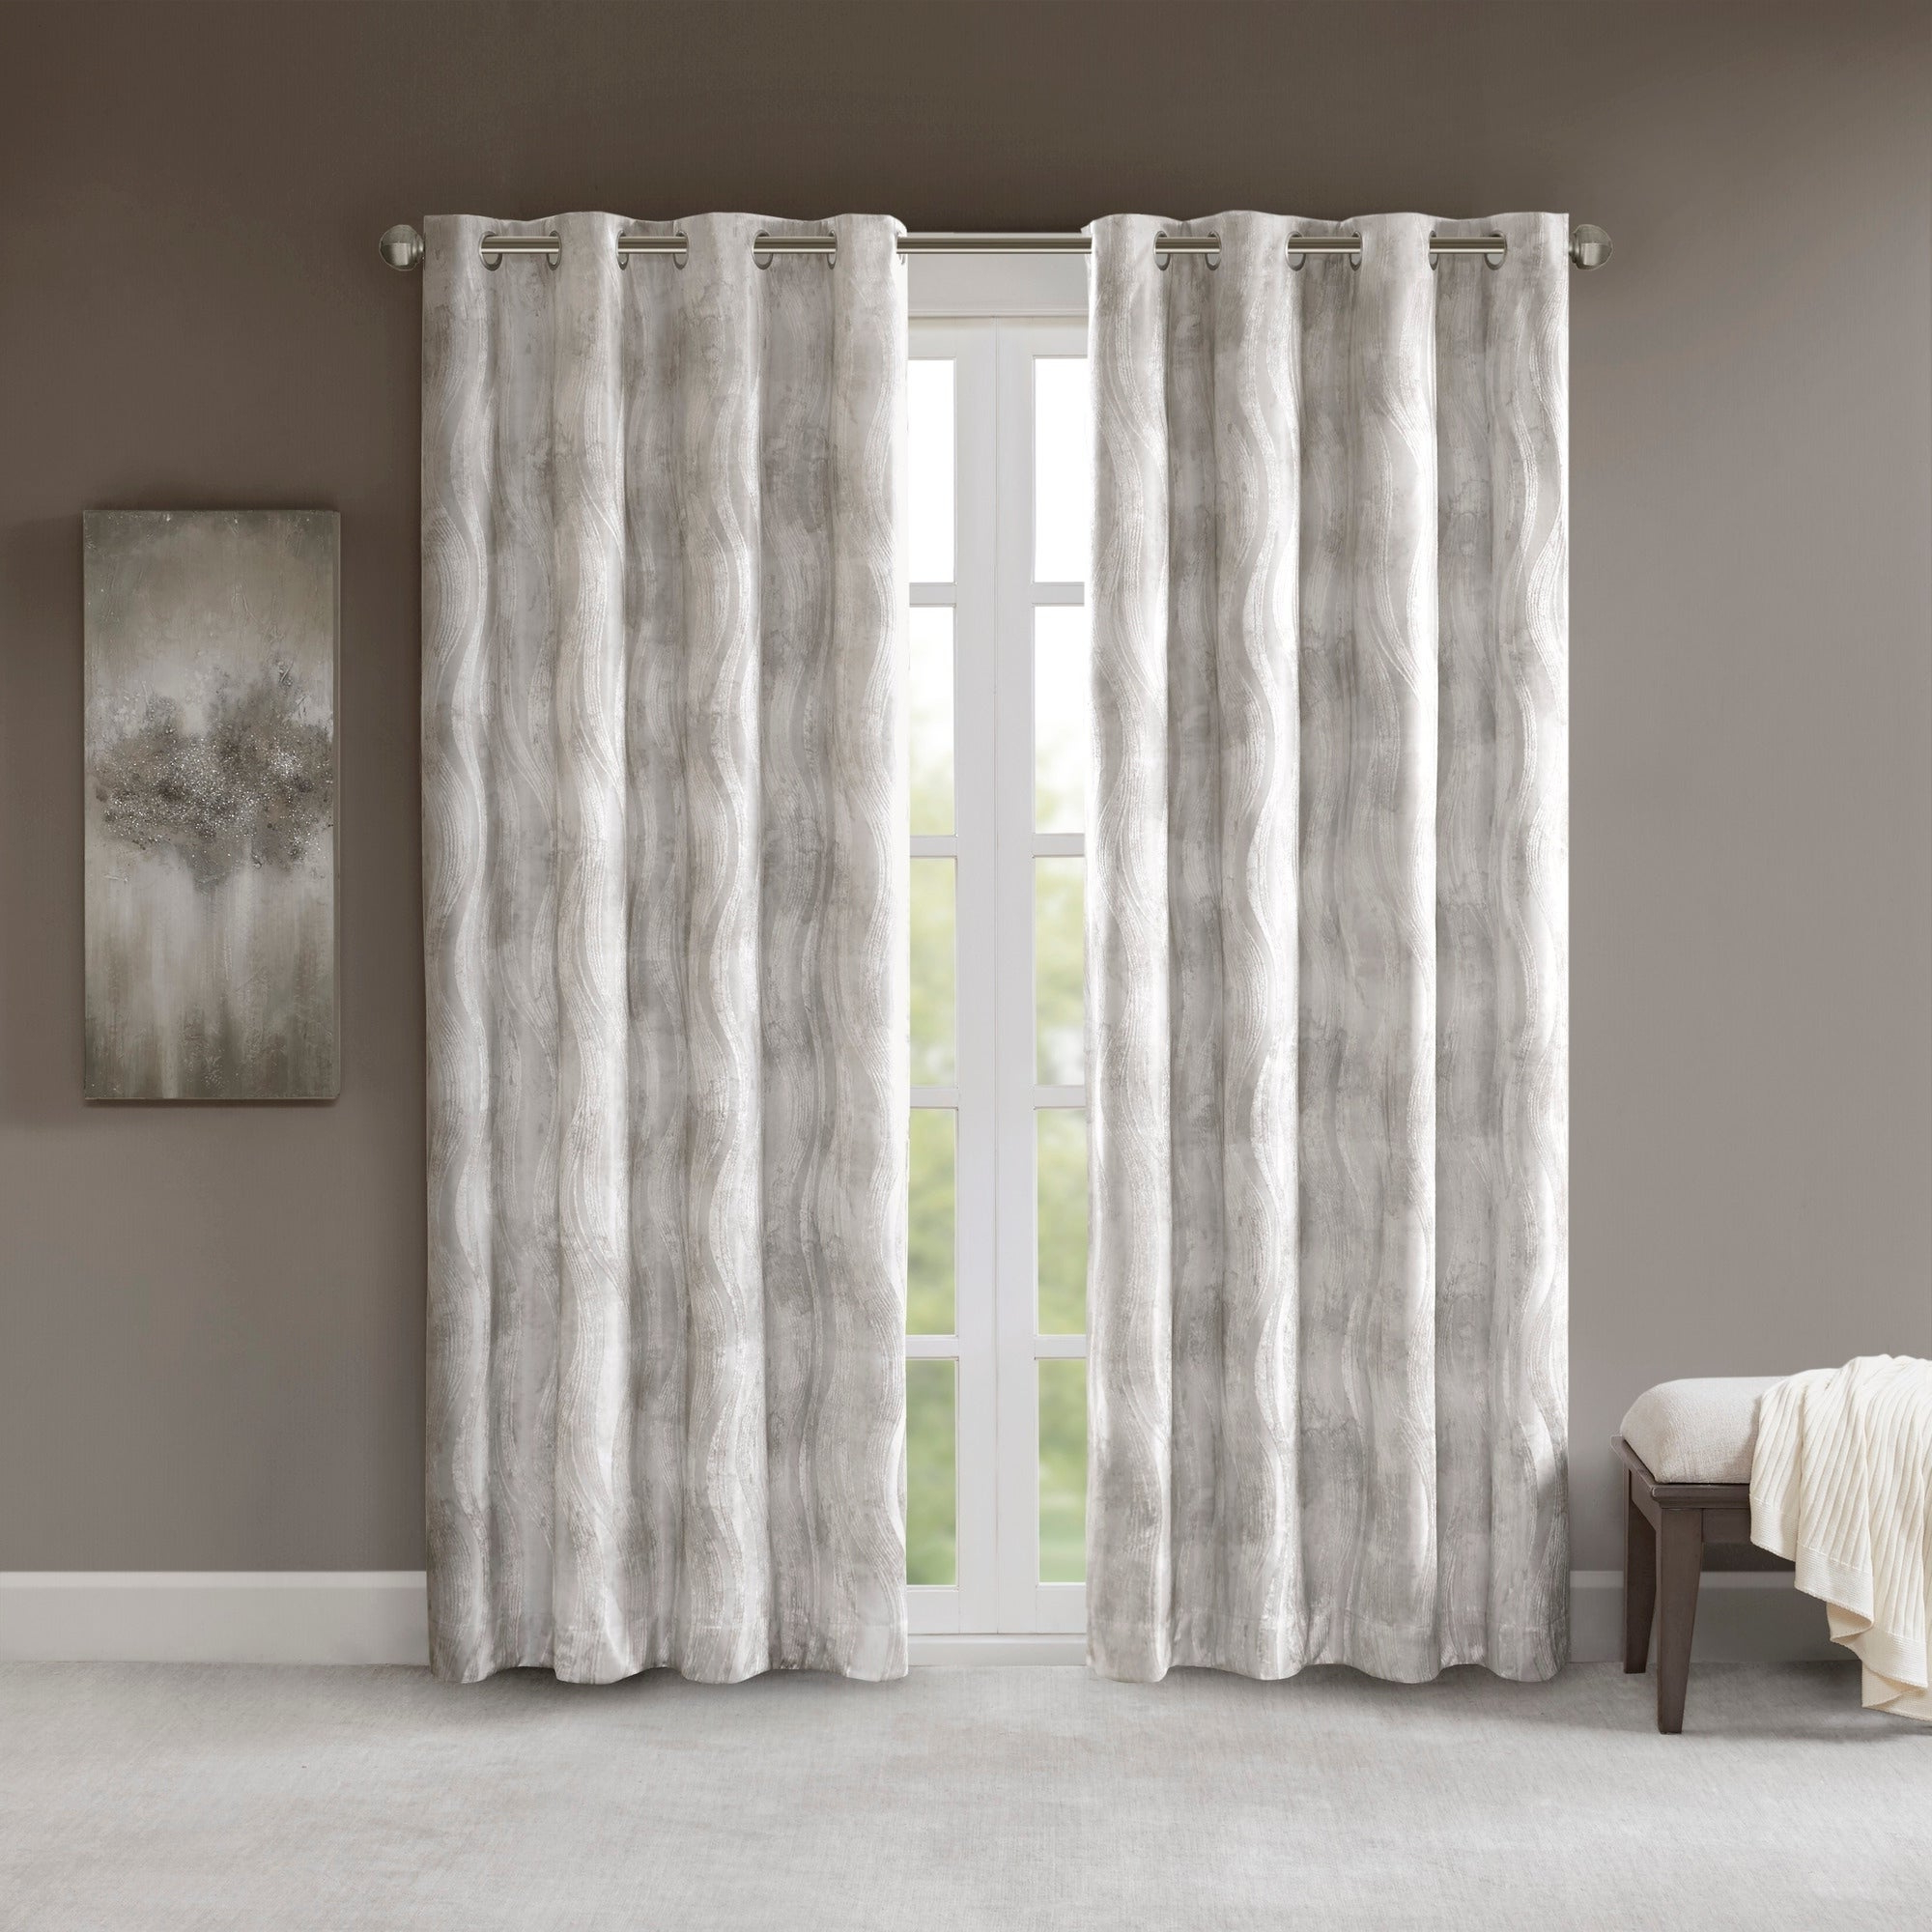 Gracewood Hollow Tucakovic Energy Efficient Fabric Blackout Curtains With Regard To 2021 Sunsmart Alastair Ivory Printed Jacquard Total Blackout Single Curtain Panel (View 20 of 20)